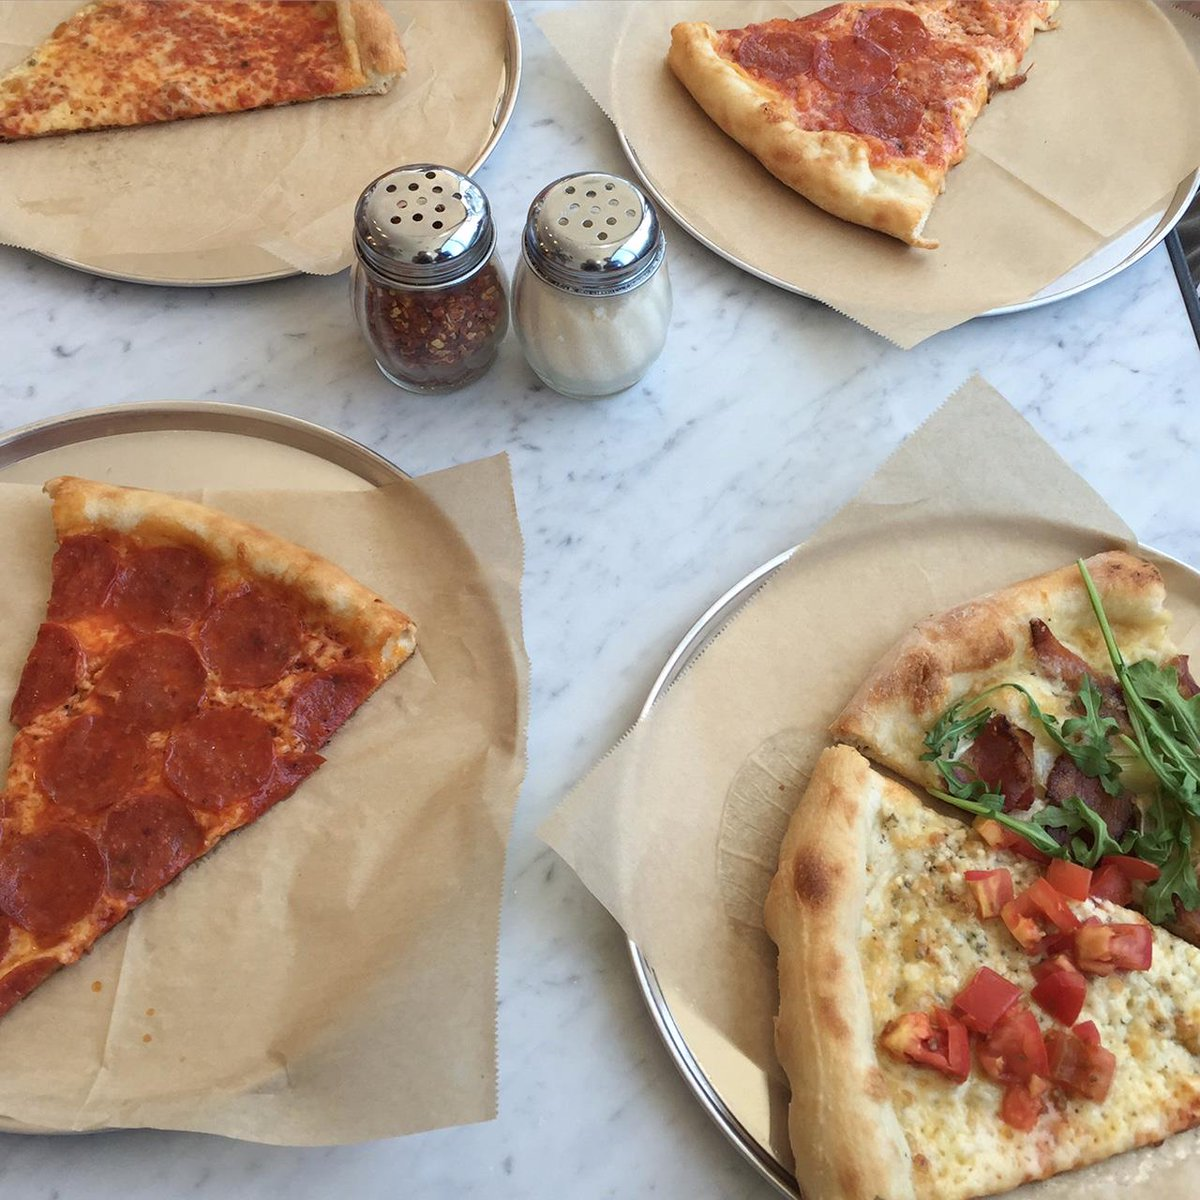 Free slices at our 10th & Miller location - come by Saturday, 5/14 between 11:00 am - 3:00 pm. https://t.co/yf98V1P9gM